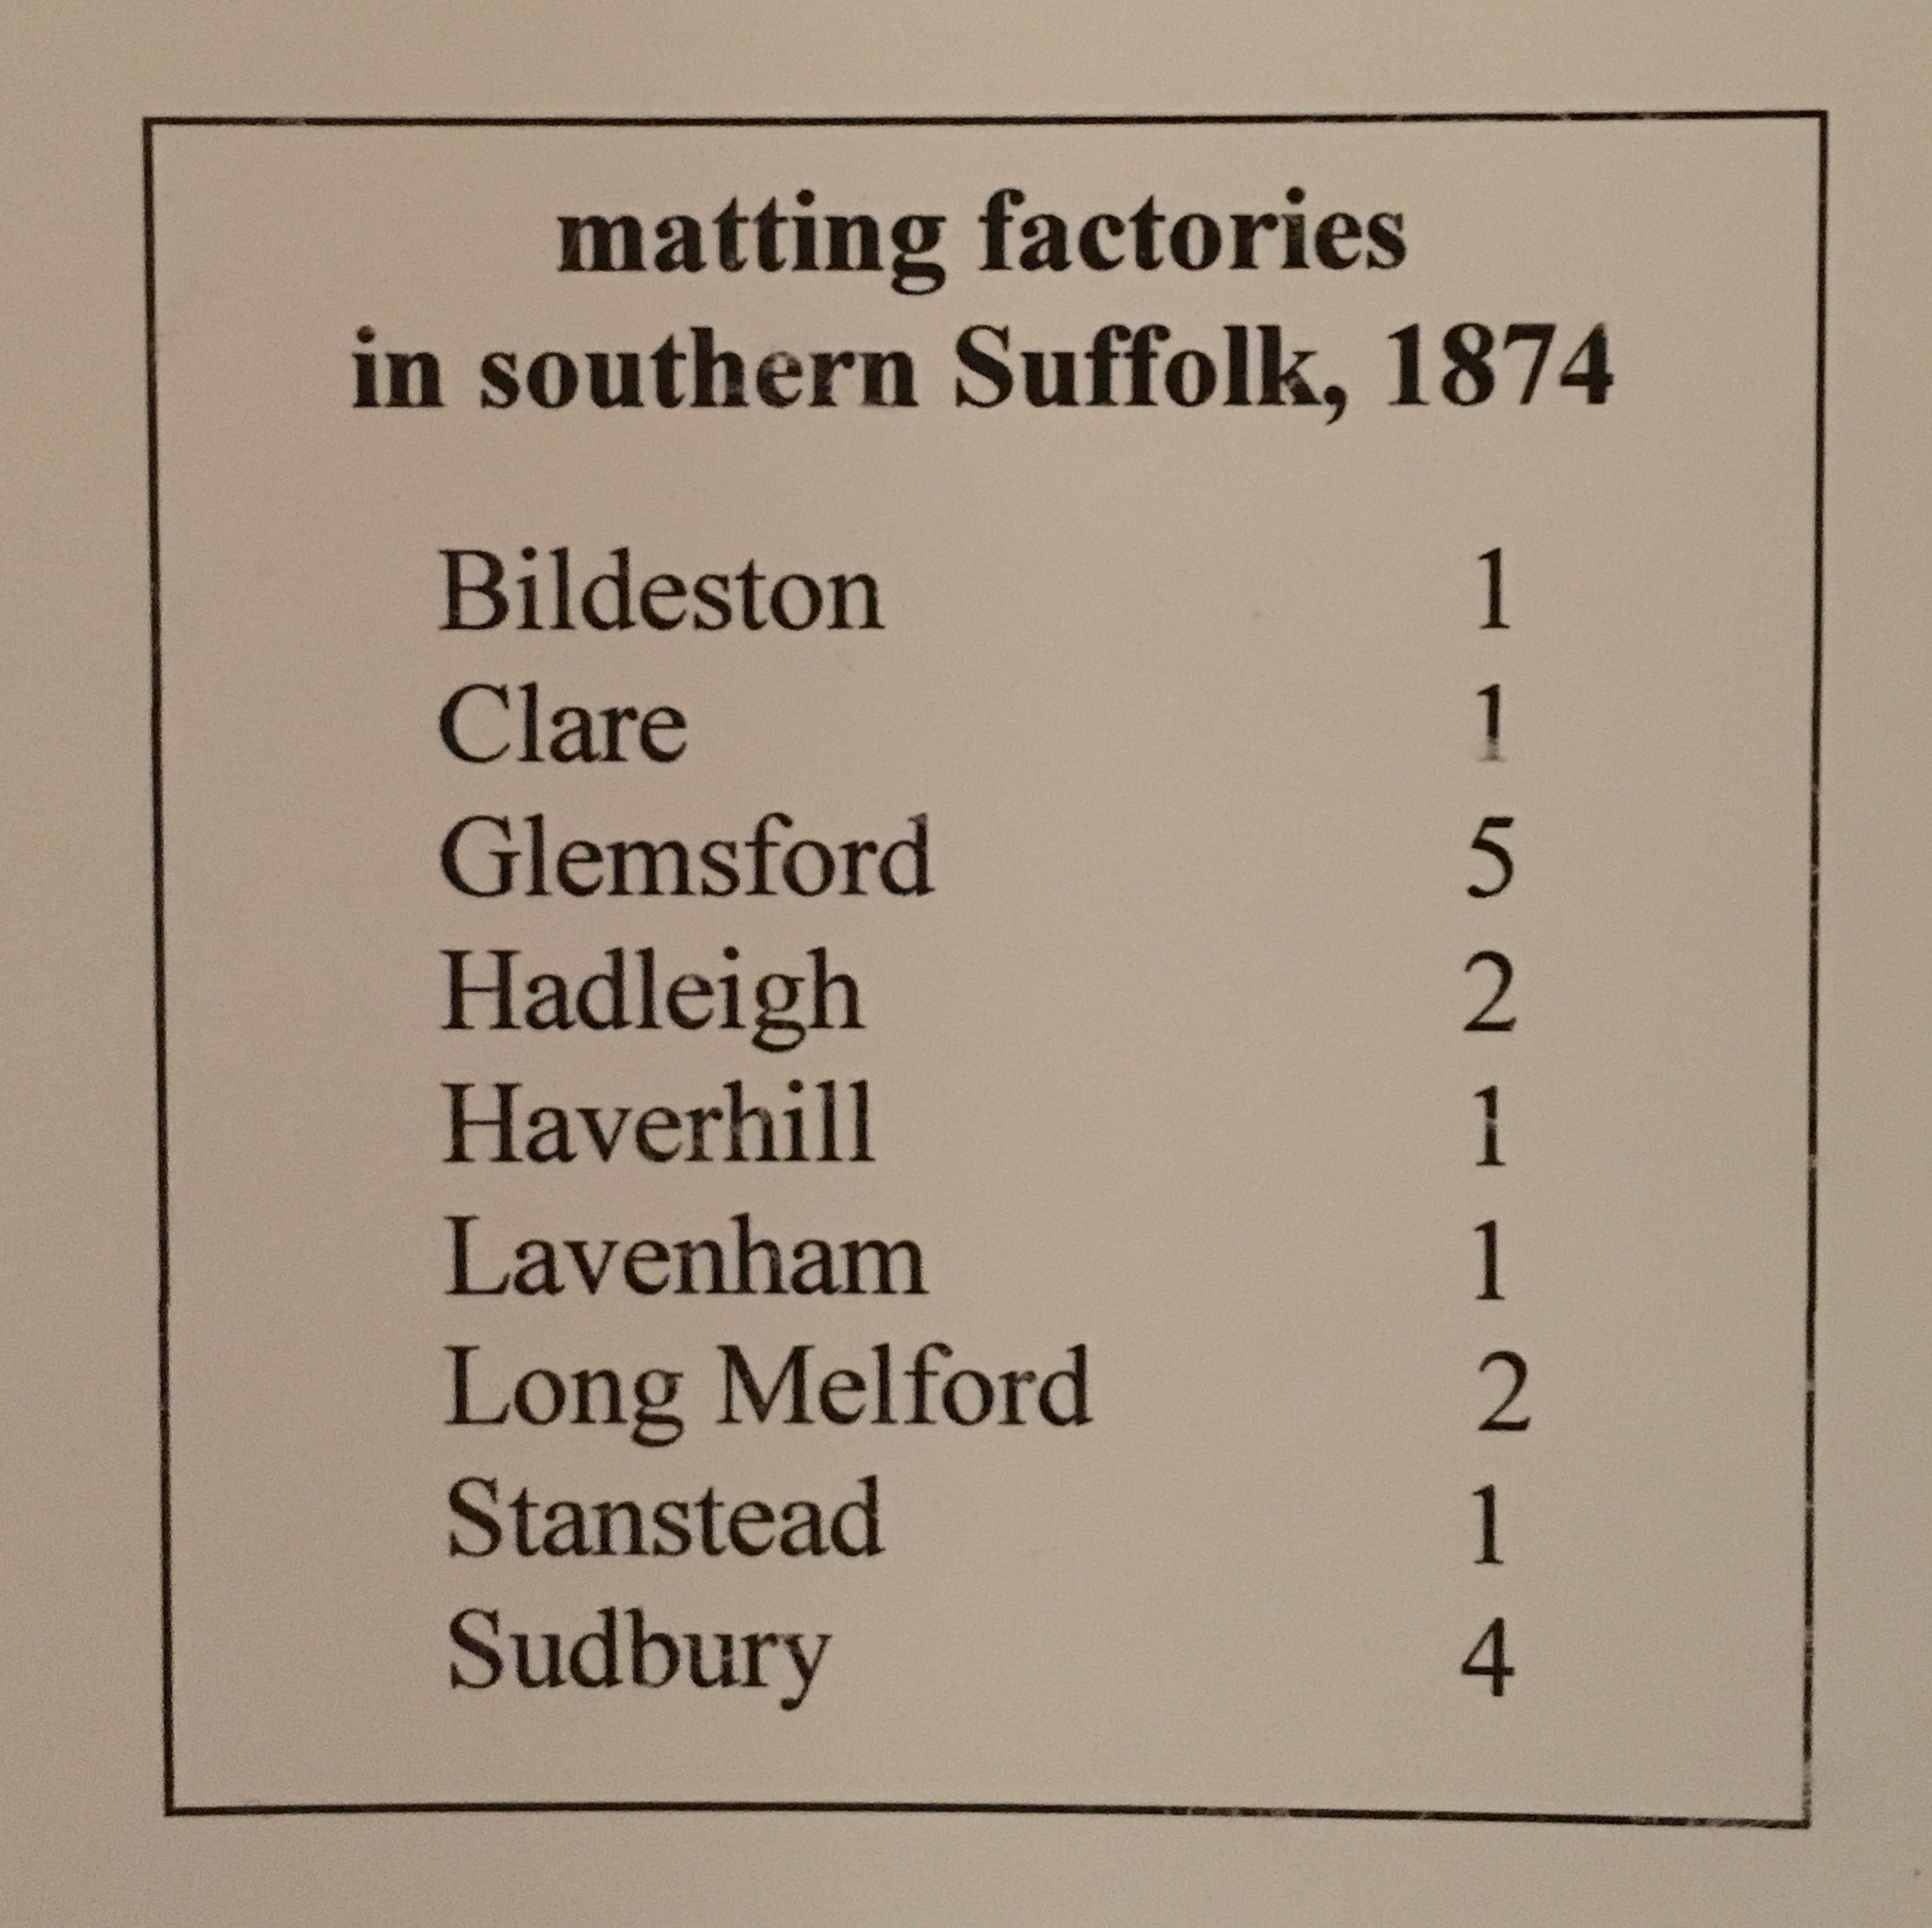 List of number of matting factories in Southern Suffolk, 1874. Bildeston: 1, Clare 1, Glemsford: 5, Hadleigh: 2, Haverhill:2, Lavenham: 1, Long Melford 2, Stansted:1, Sudbury: 4.